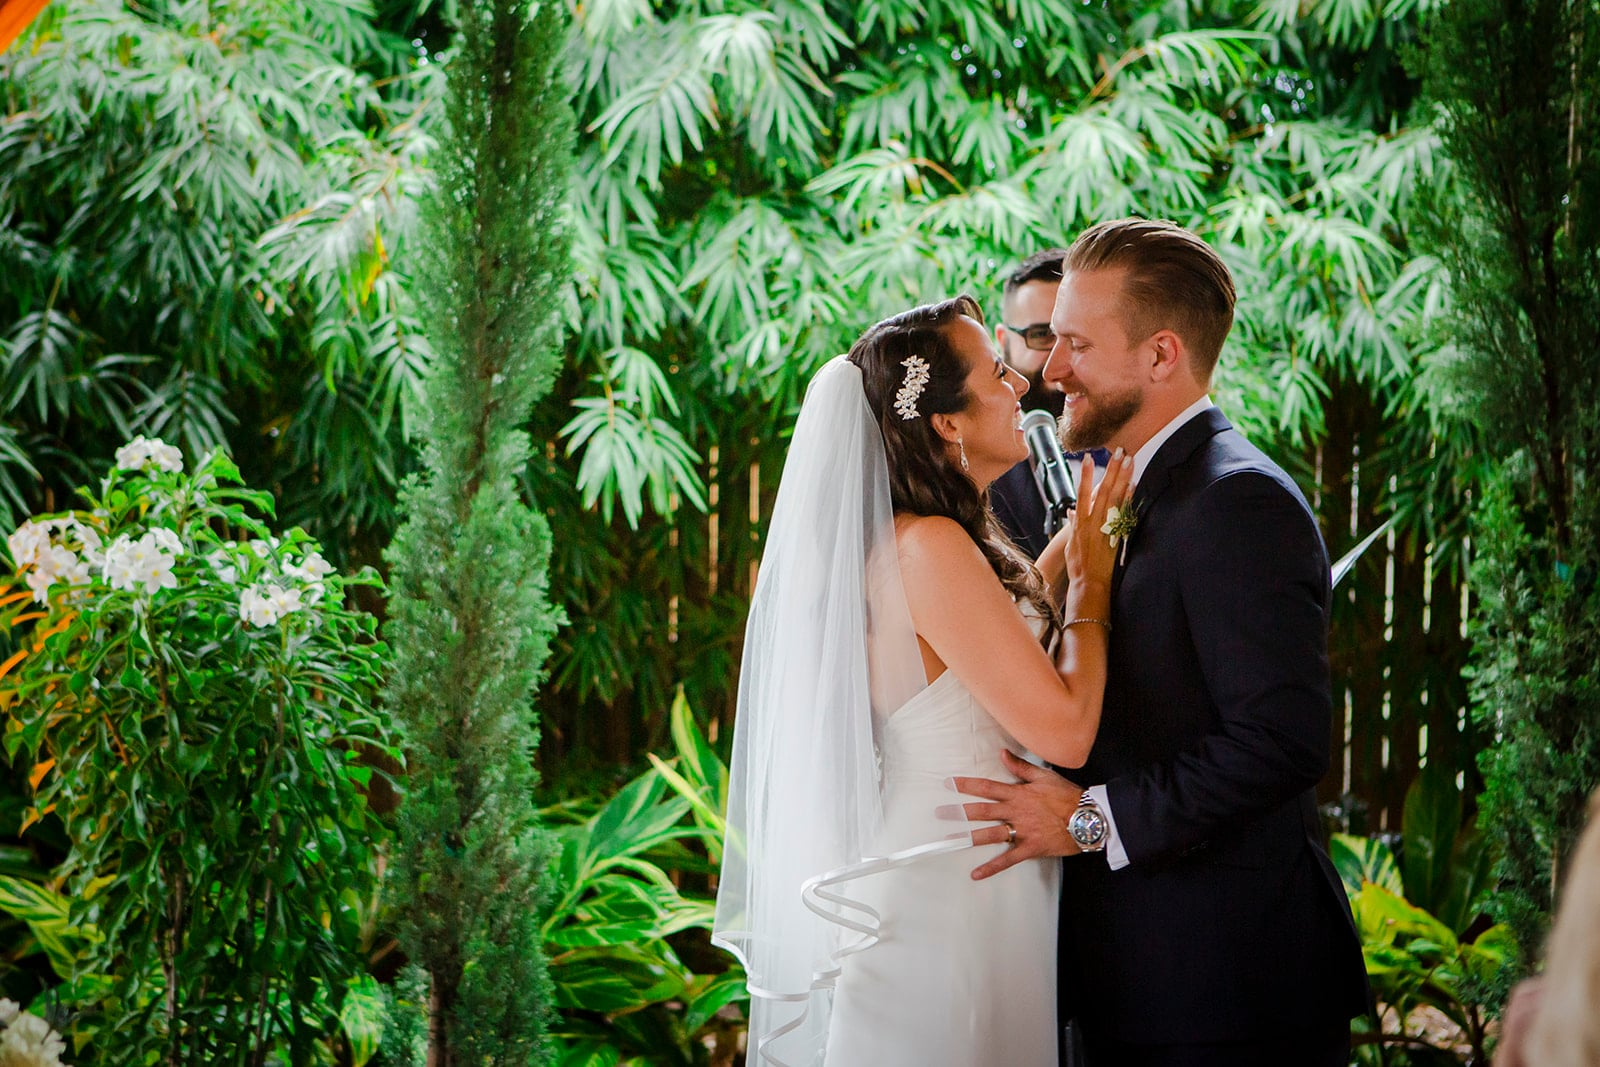 Rockledge Gardens - tropical wedding ceremony among lush greenery